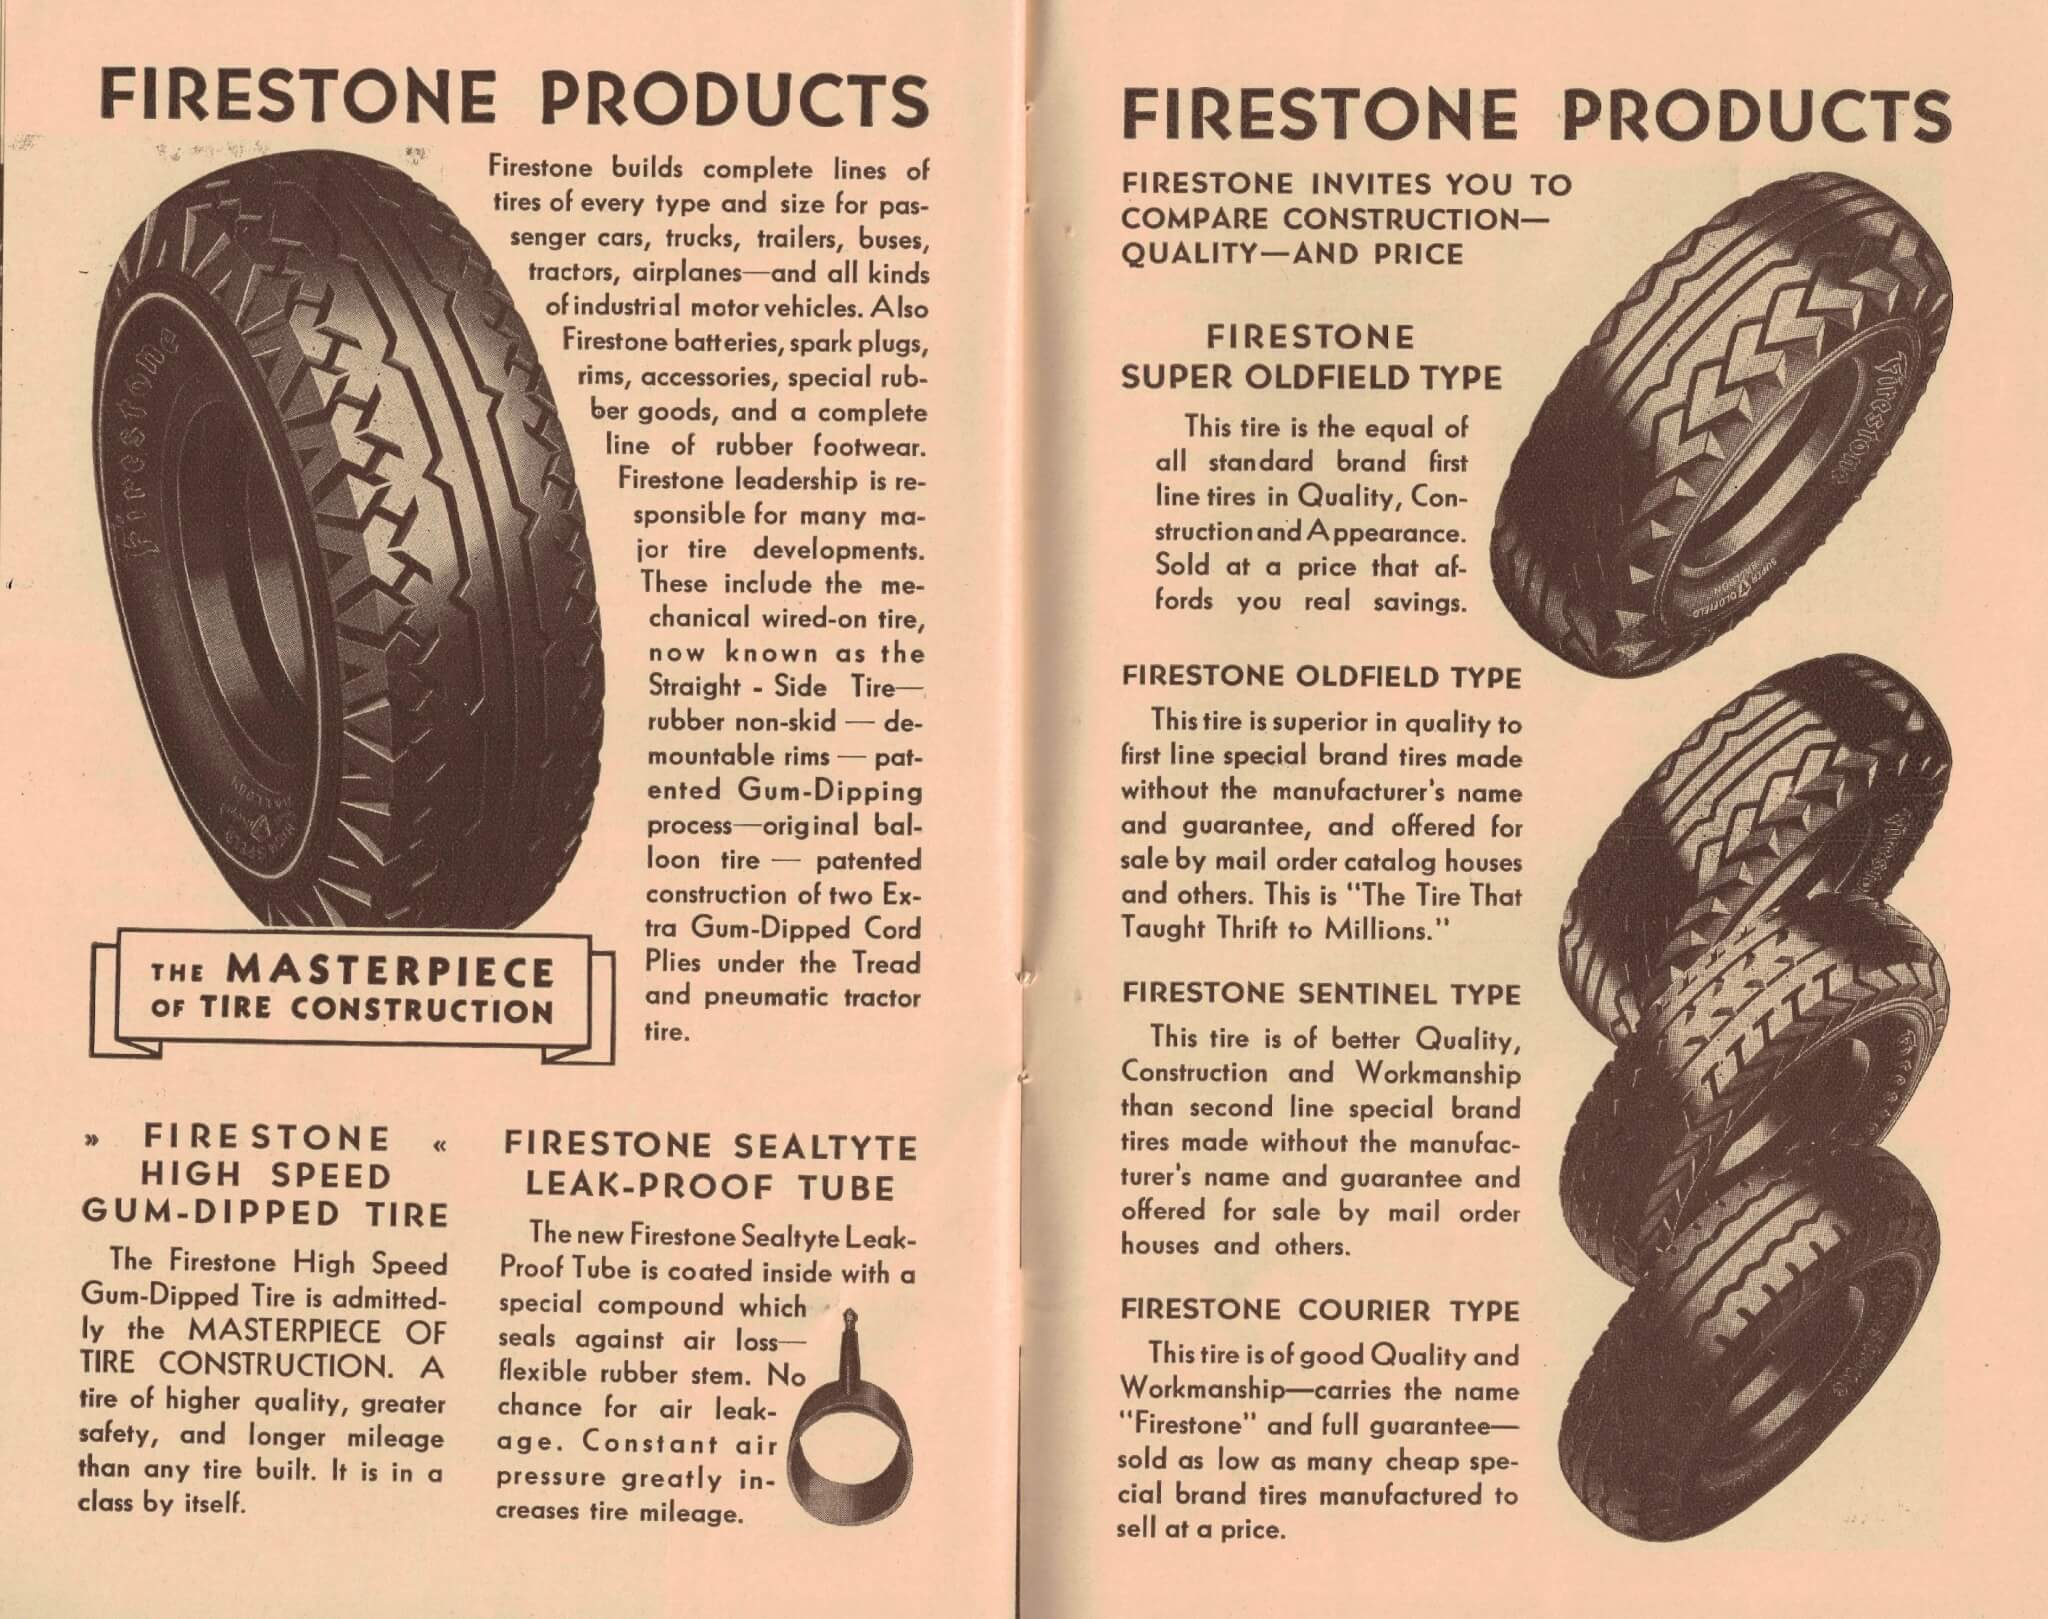 Early firestone ad